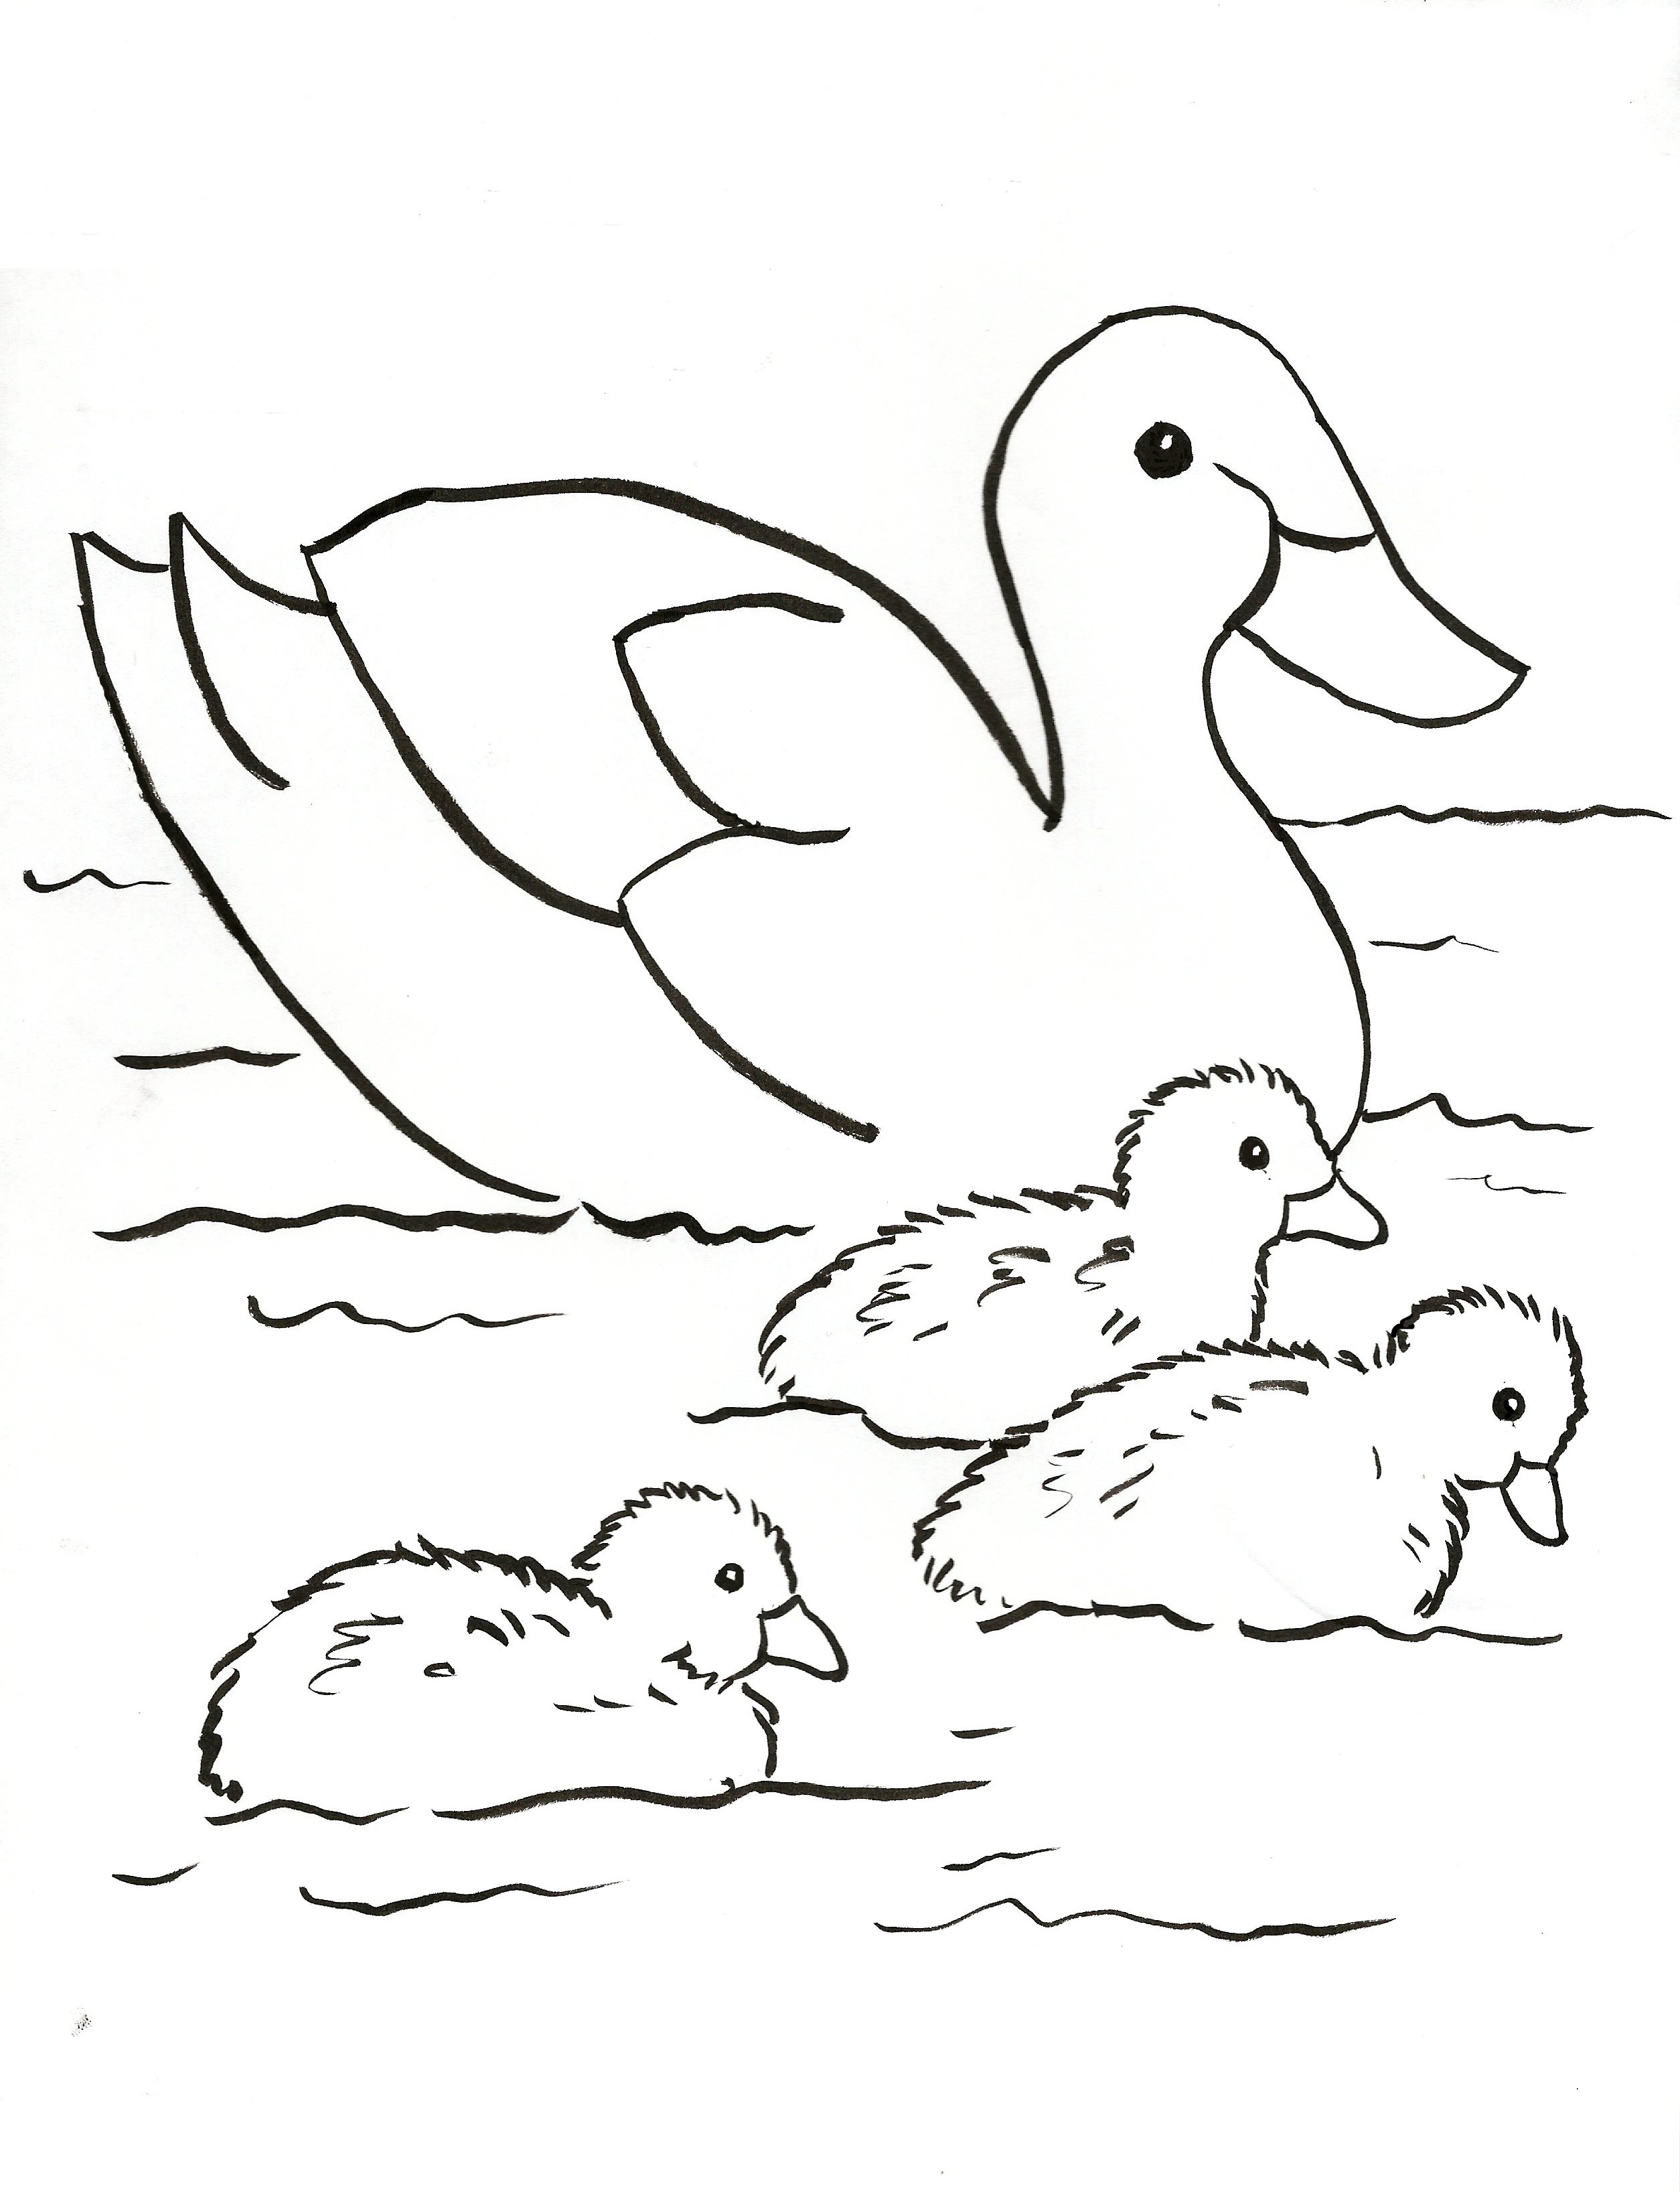 Duck family coloring page samantha bell for Coloring pages of ducks